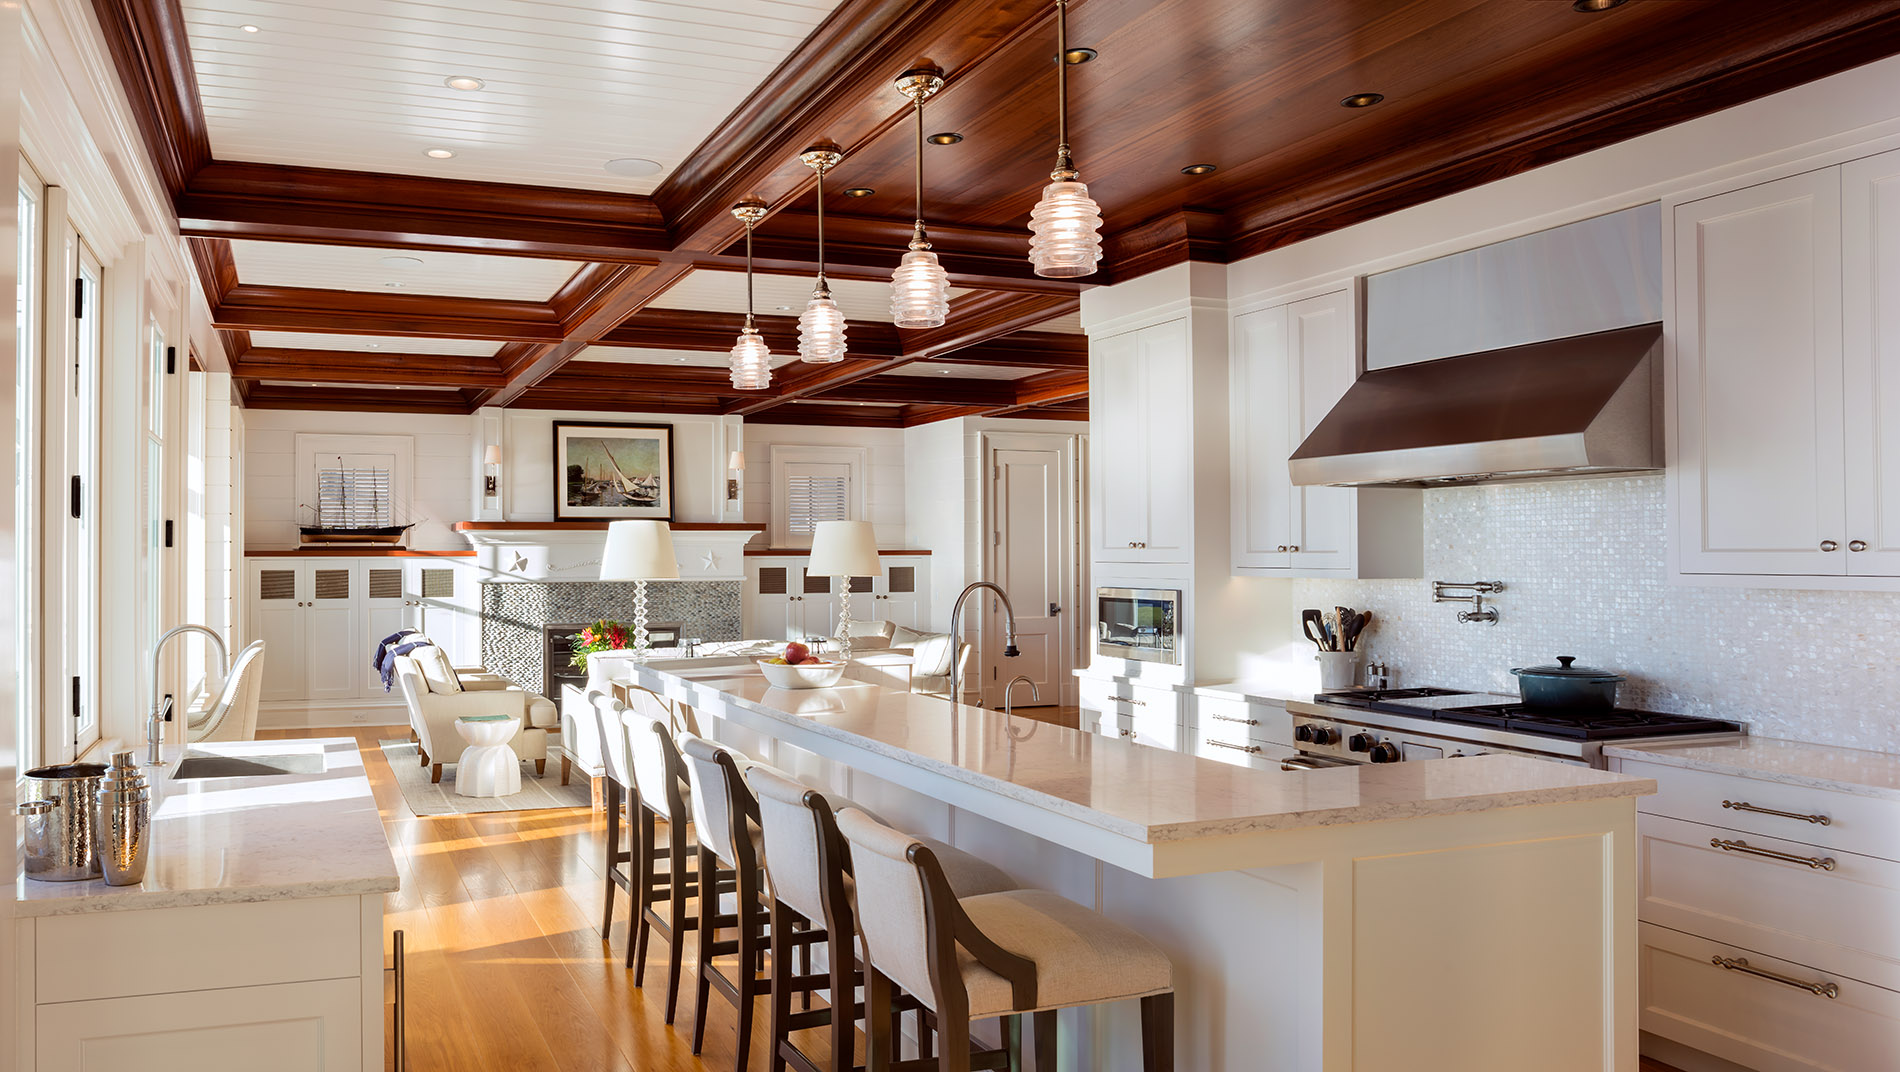 We Are Architects And Designers That Are Driven By A Steadfast Commitment  To Detail And Unwavering Standards Of Quality. We Work Passionately To  Create ...